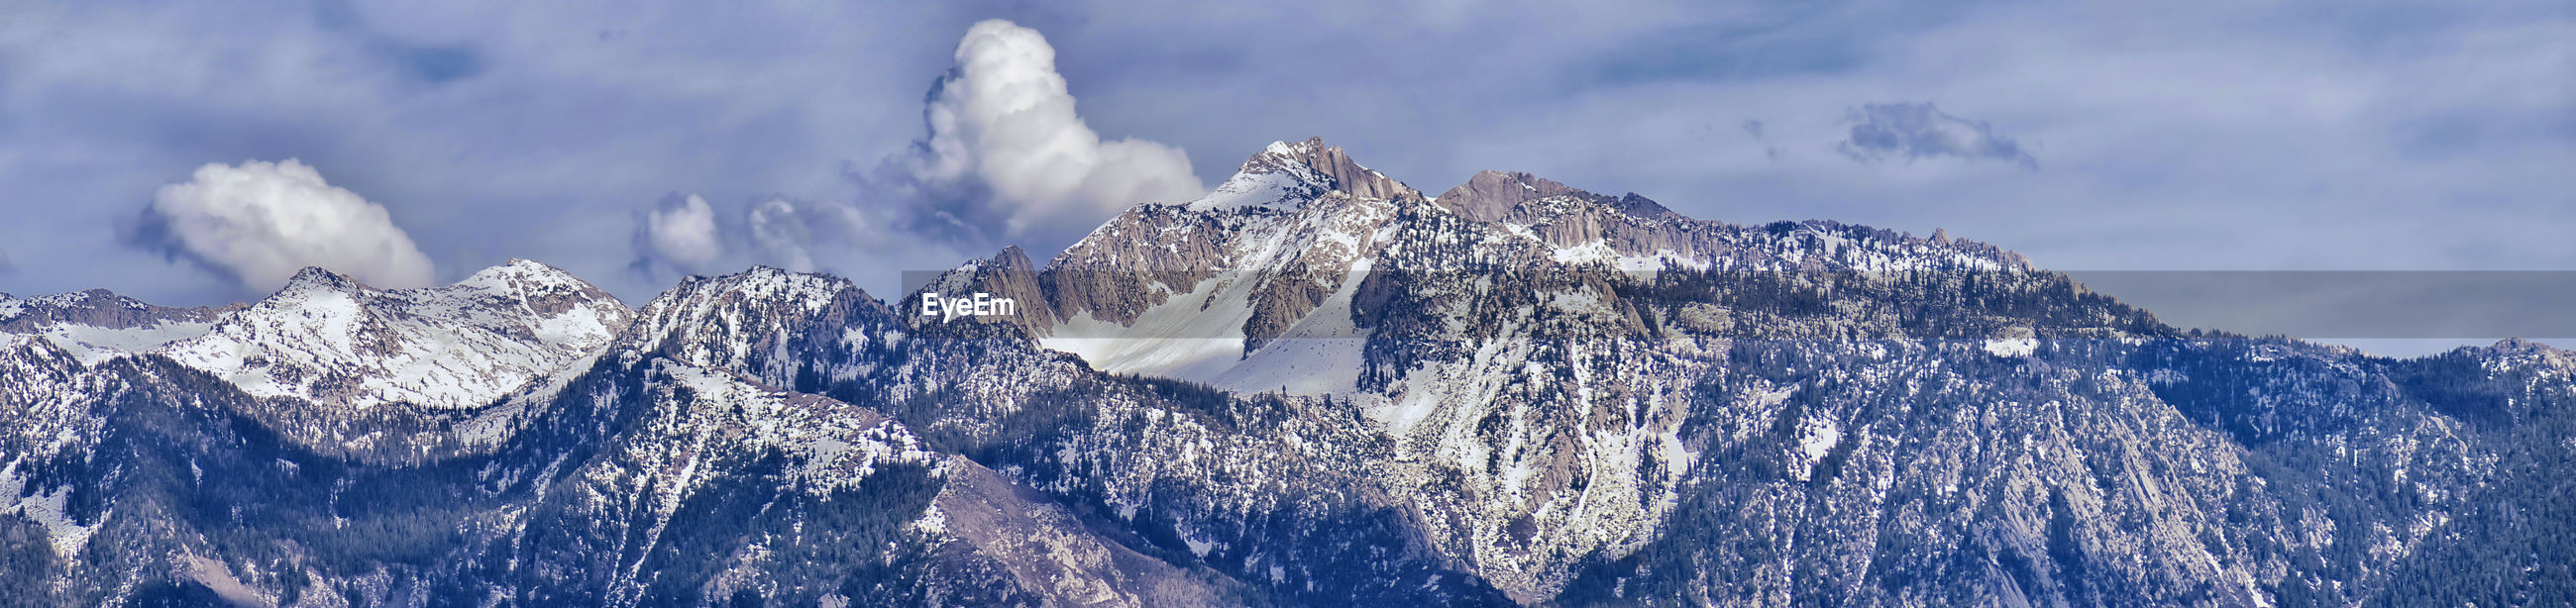 PANORAMIC SHOT OF SNOWCAPPED MOUNTAIN AGAINST SKY